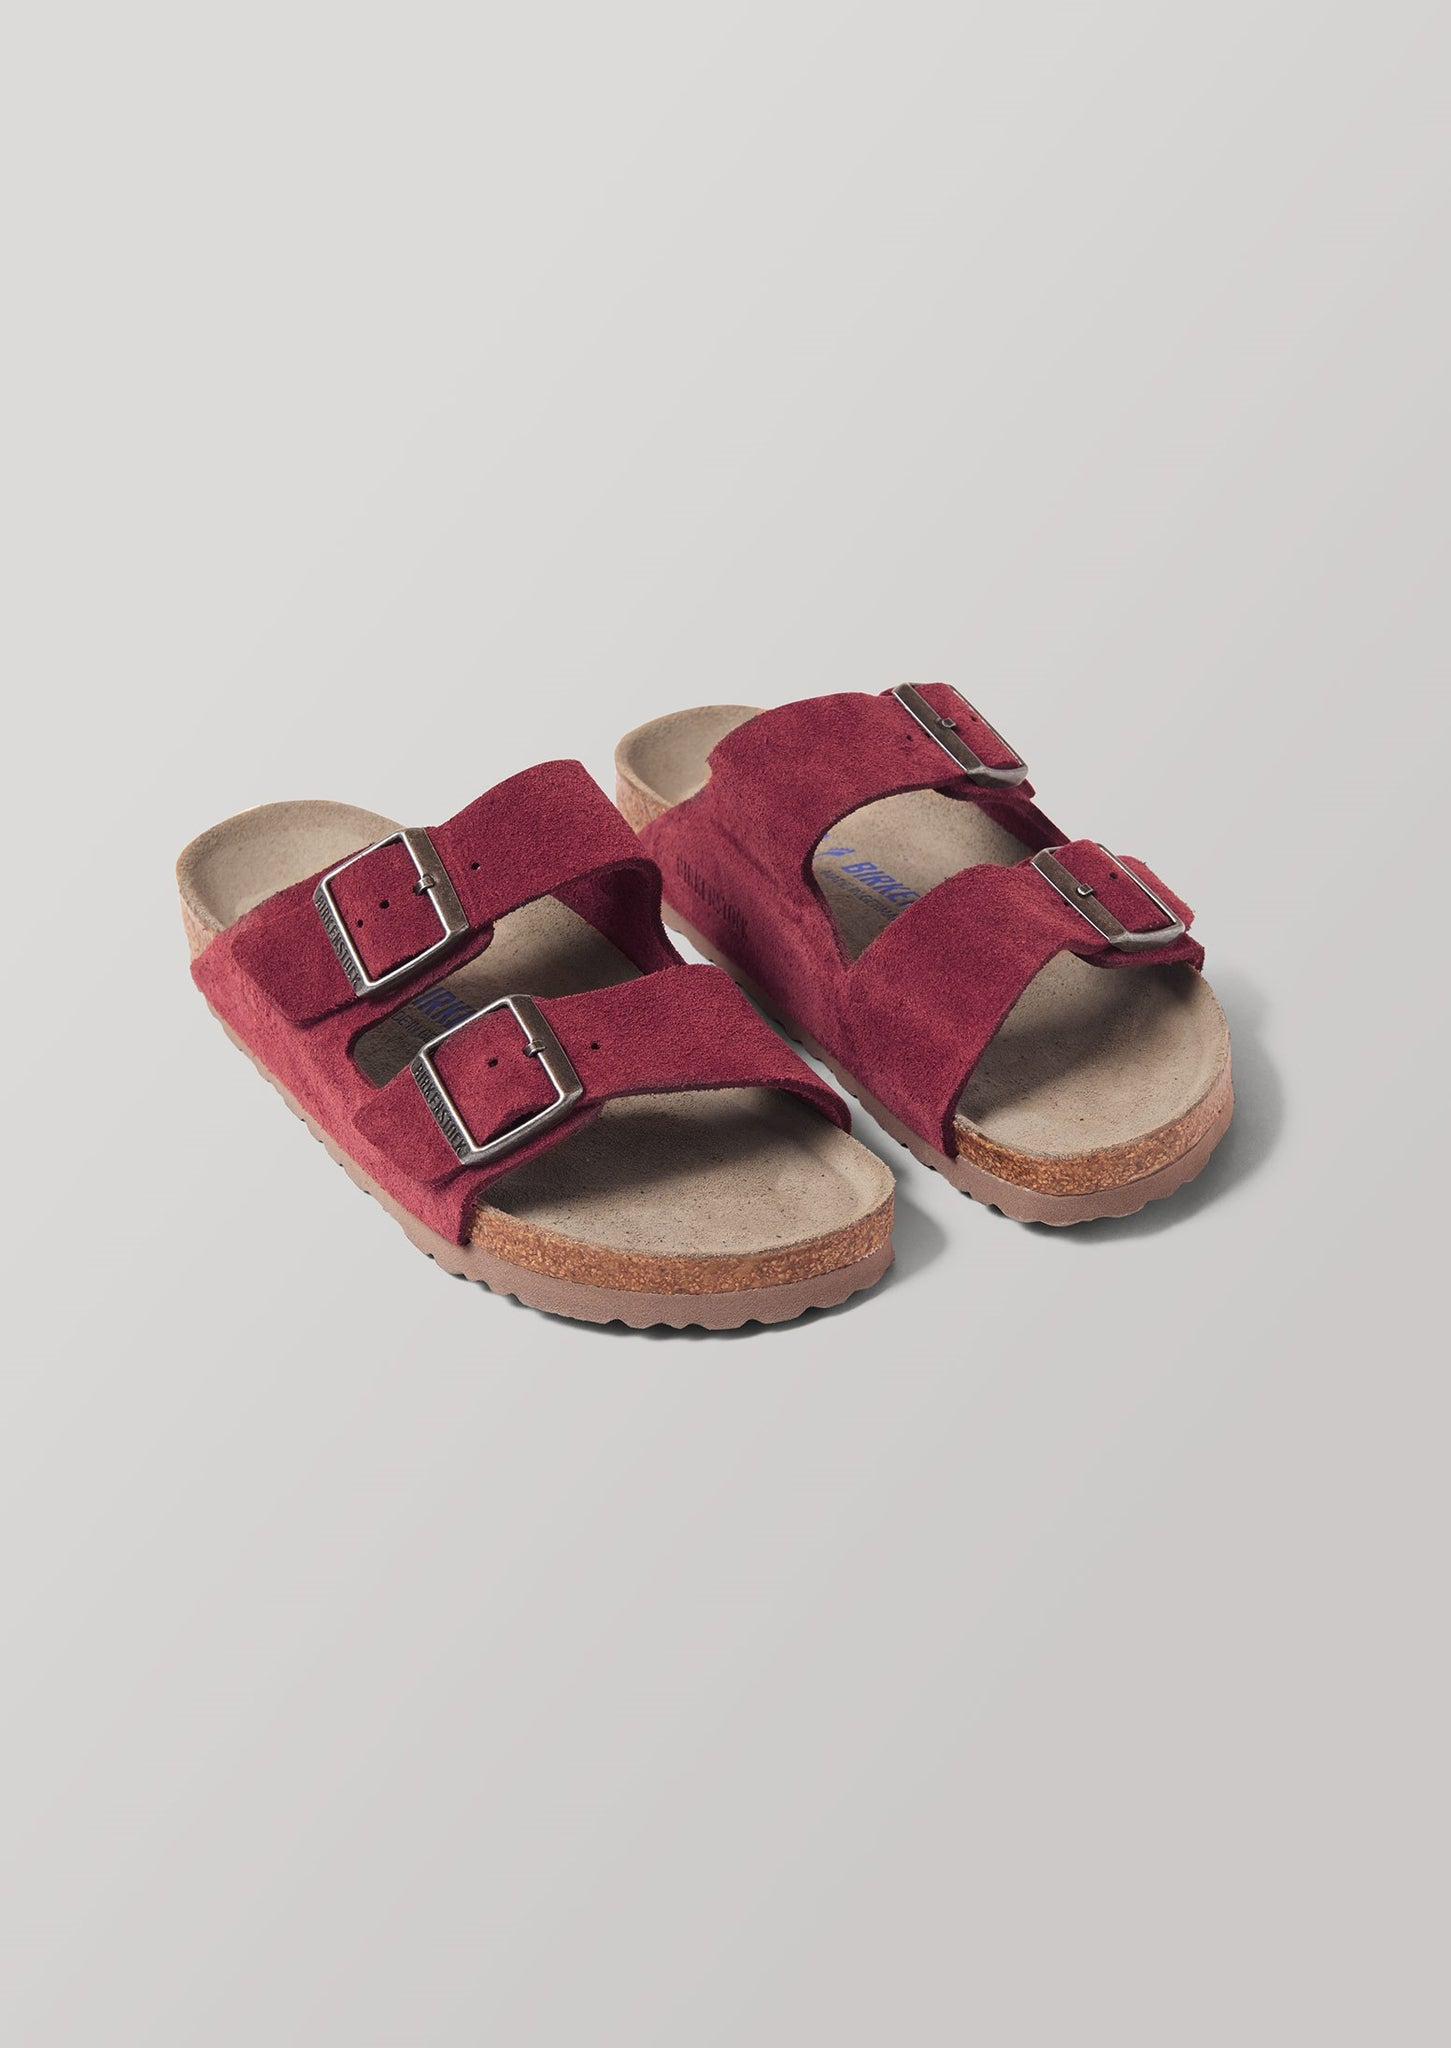 Birkenstock Arizona Suede Sandals | Vermouth